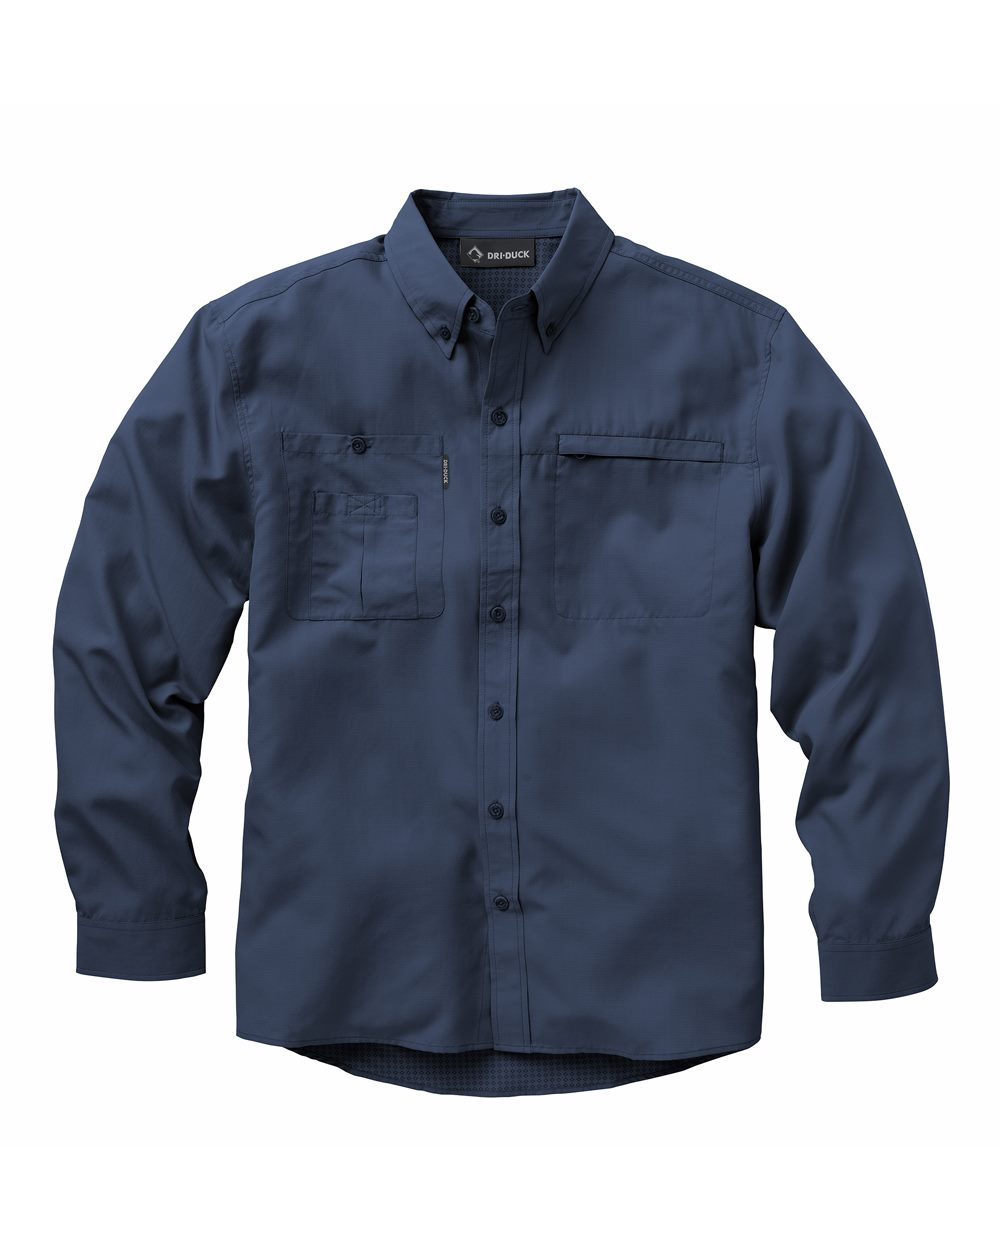 DRI DUCK 4443 - Regulator Long Sleeve